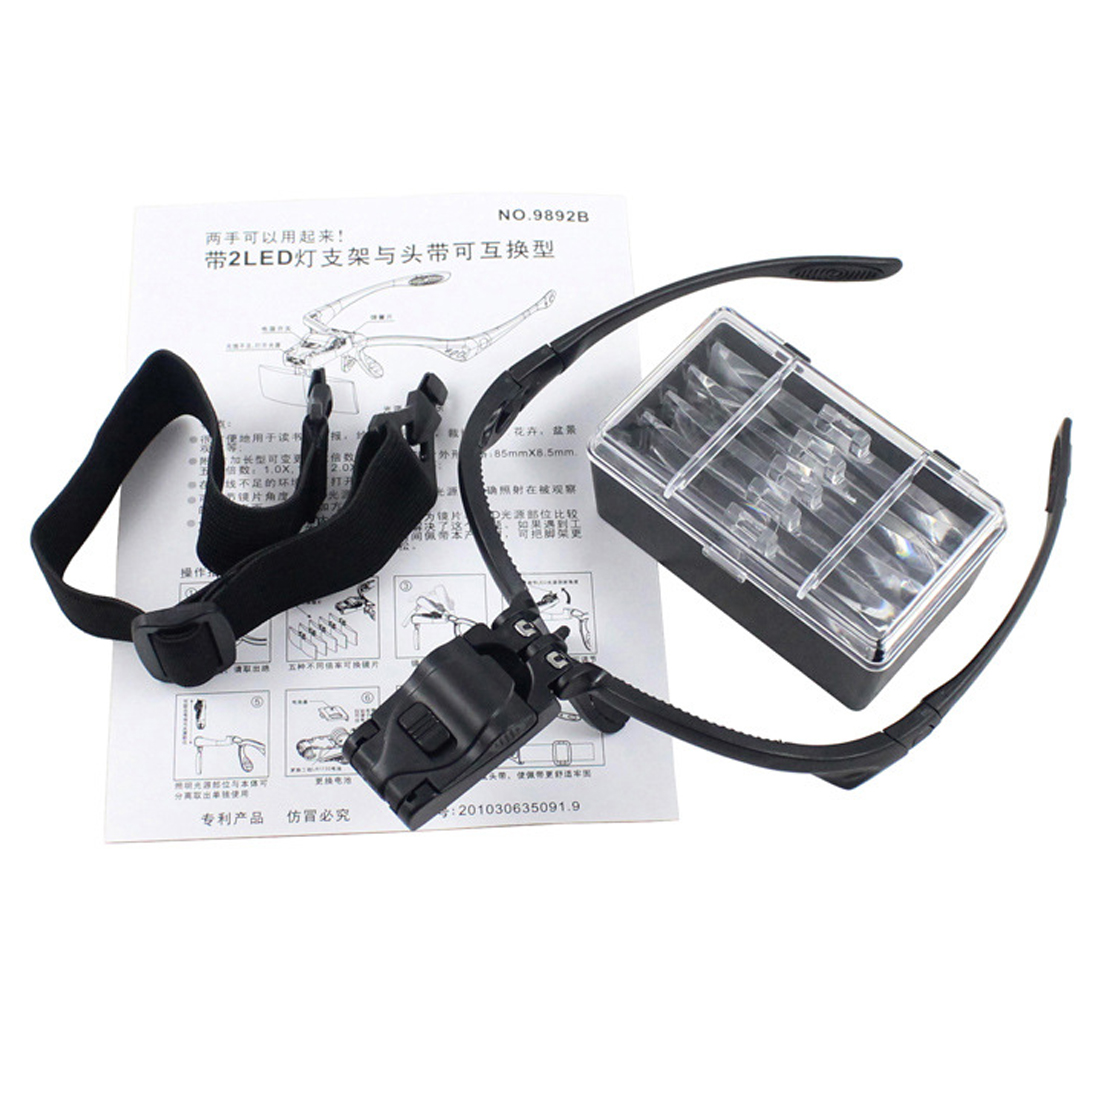 Useful 1.0X 1.5X 2.0X 2.5X 3.5X 5 Lens Adjustable Loupe Headband Magnifying Glass Magnifier with 2 LED Light Magnifying Glasses 1 0x 1 5x 2 0x 2 5x 3 5x glasses magnifier adjustable 5 lens loupe led light headband magnifier lamp magnifying glass